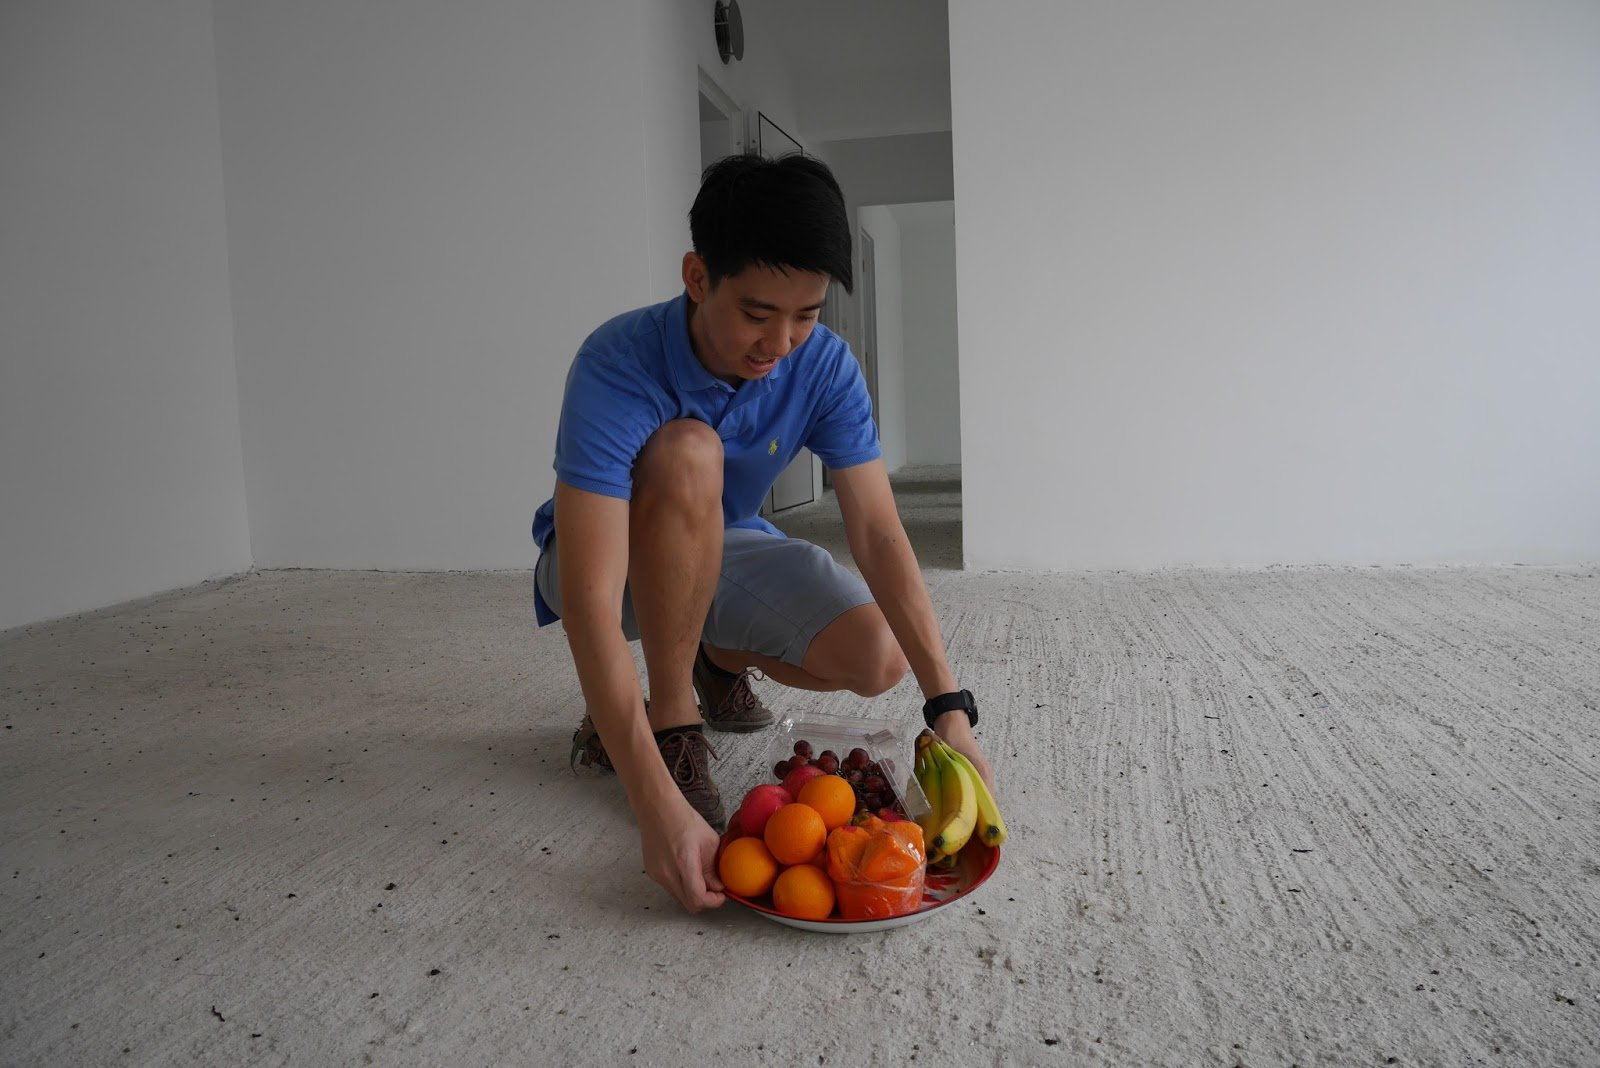 man carrying fresh fruits as part of Chinese ritual for moving in a new house